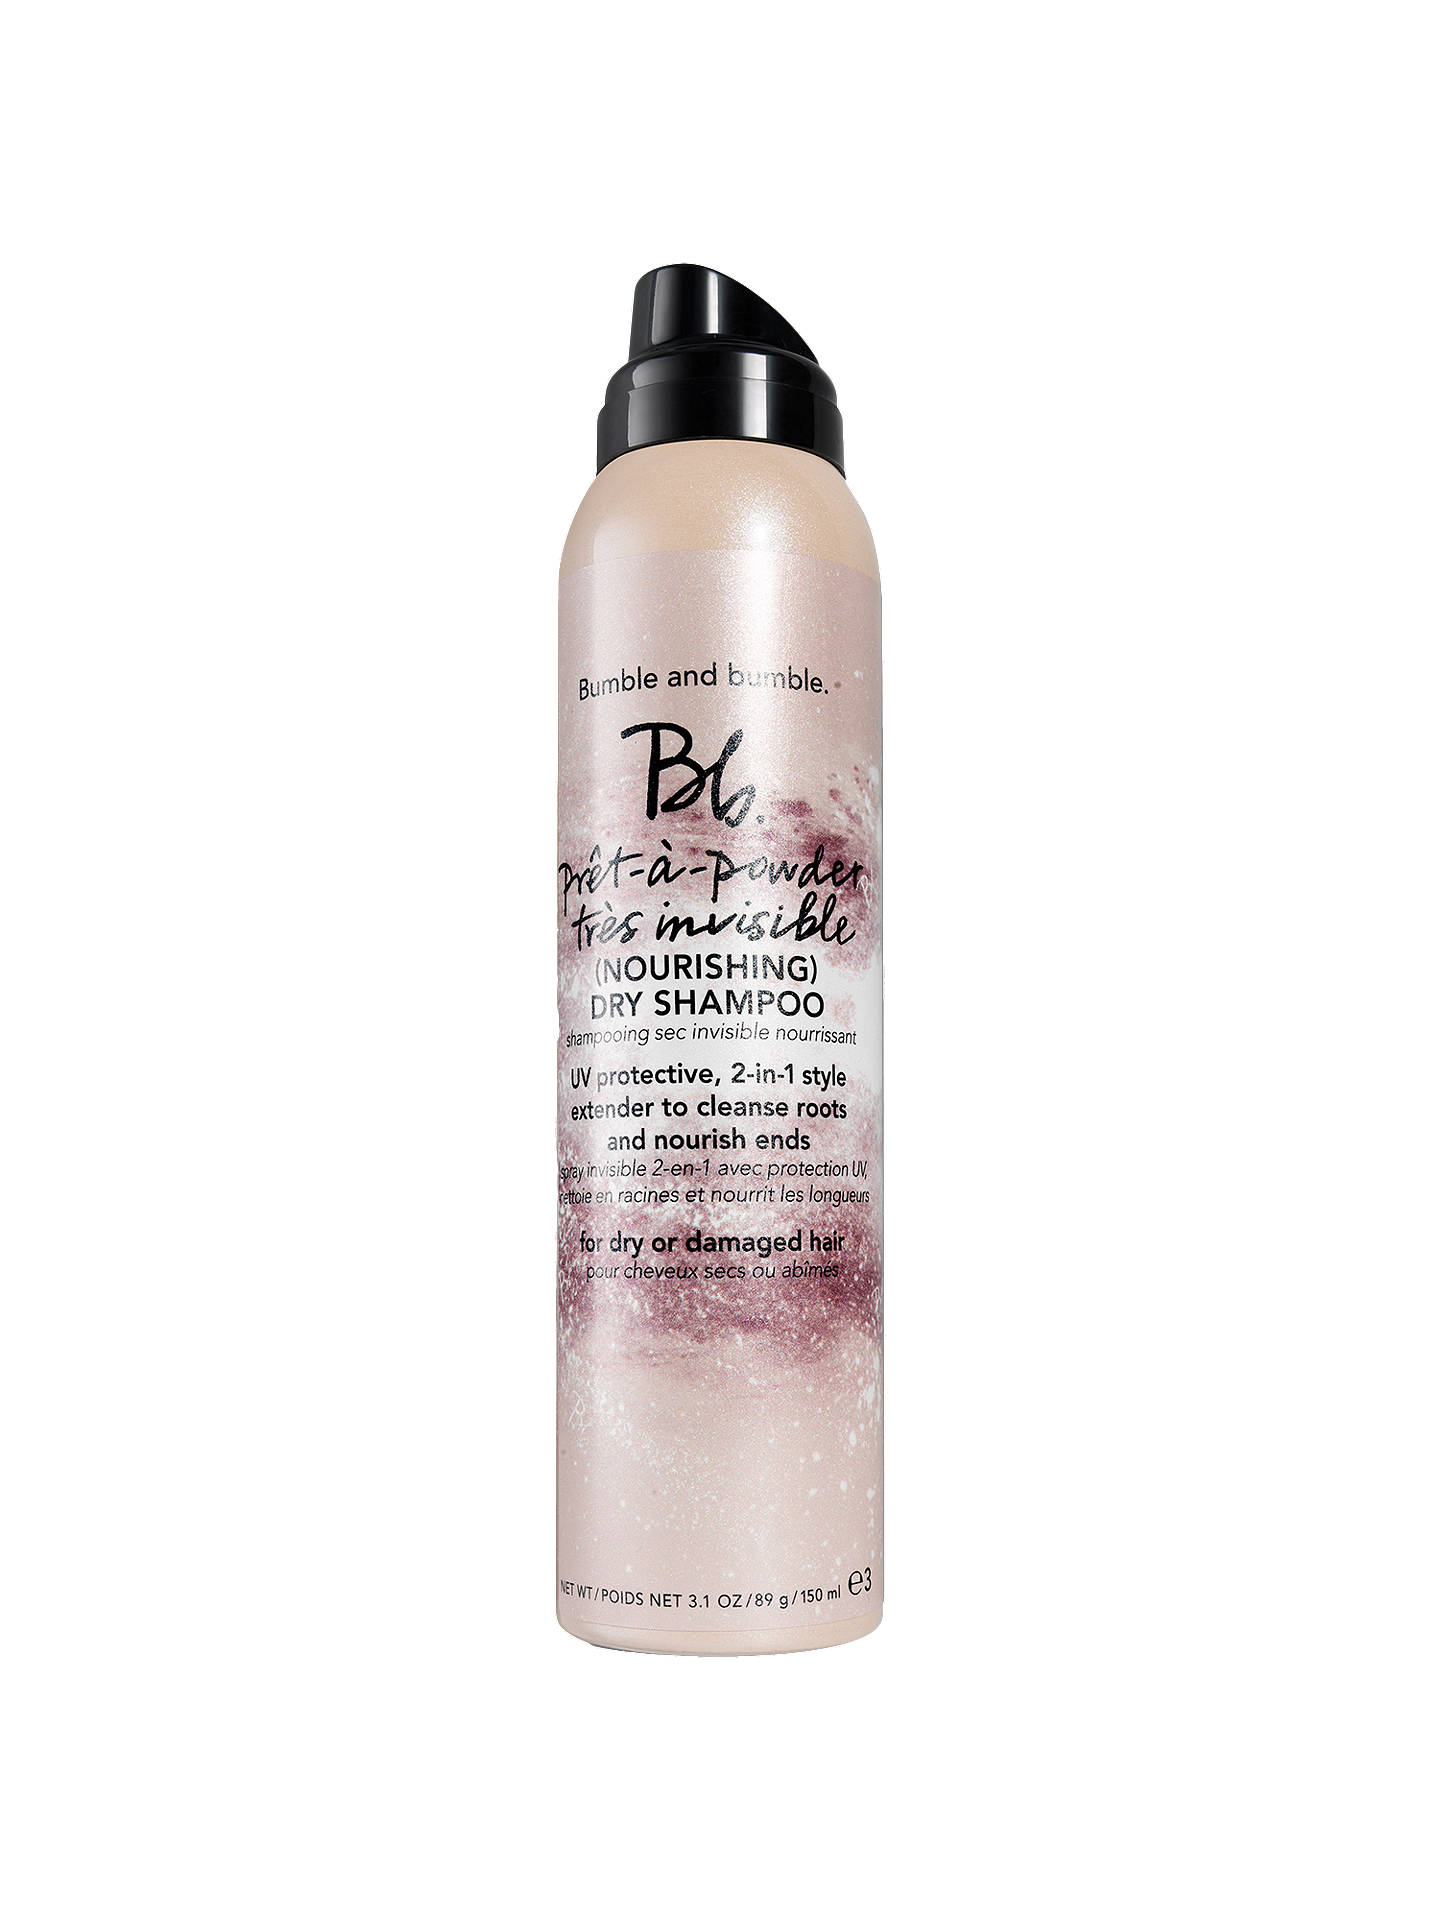 BuyBumble and bumble Pret A Powder Nourishing Dry Shampoo, 150ml Online at johnlewis.com